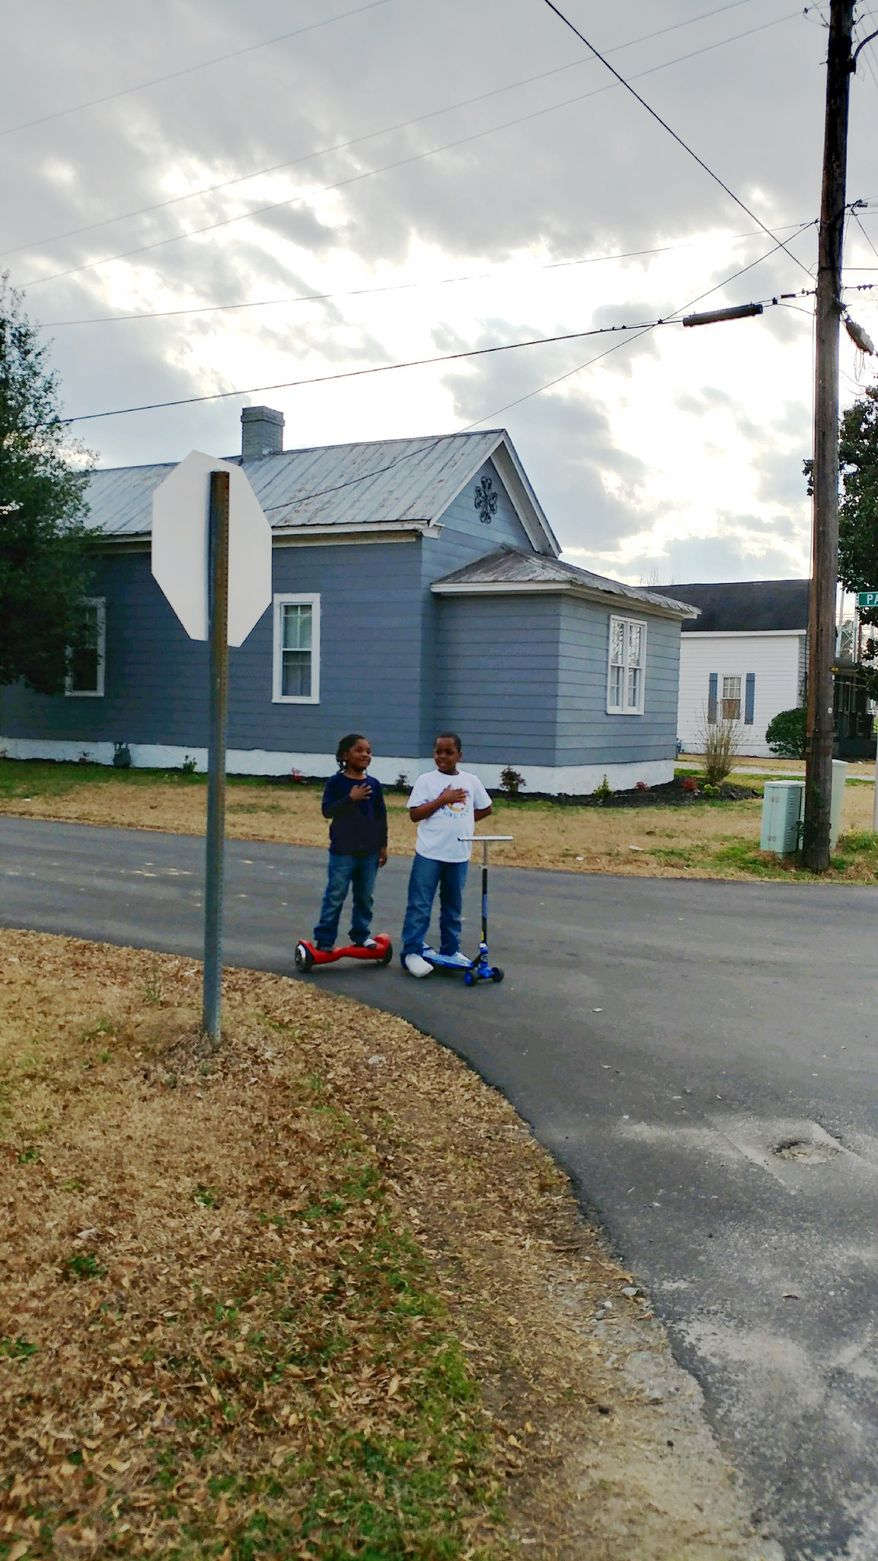 Derrick Ingram, 6, (left) and his 8-year-old cousin Thomas Jones place their hands over their hearts and recite the Pledge of Allegiance as fire department chaplain Bobby Herring raises the U.S. flag in Roseboro, North Carolina, on Feb. 8, 2019. The photo of the two boys was posted on social media, where it has become a viral sensation. (Photograph by Bobby Herring)